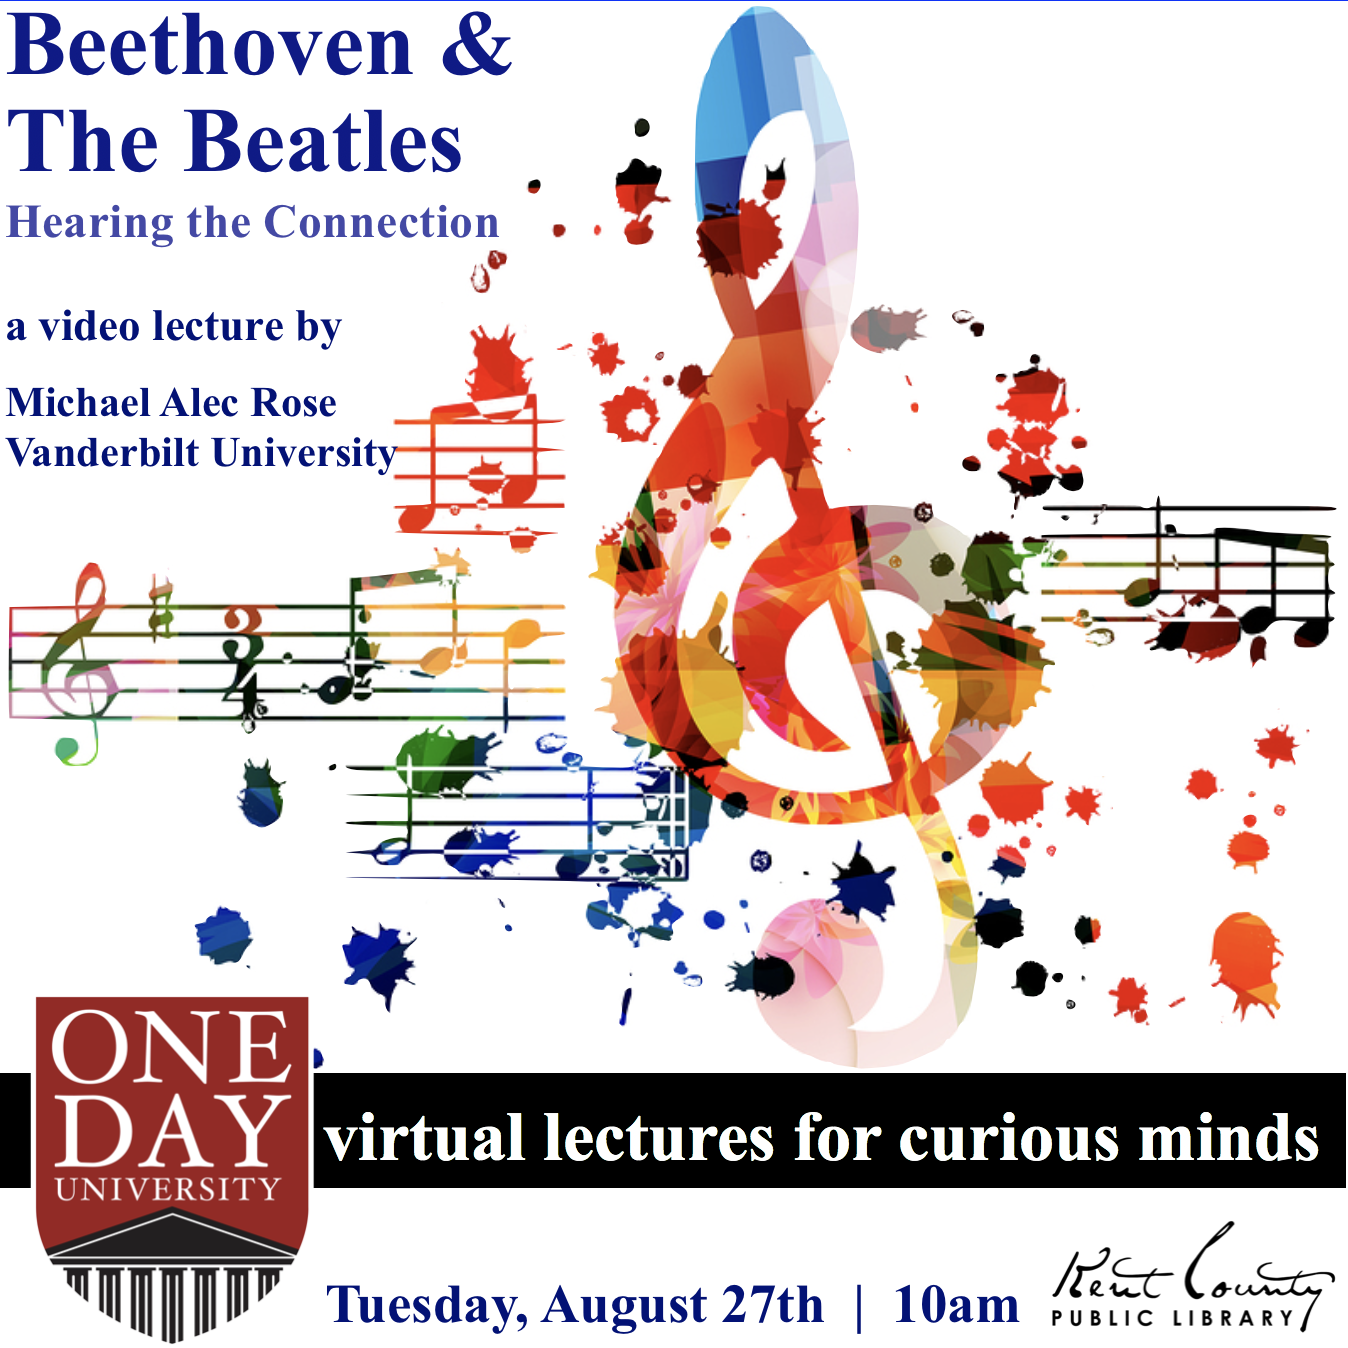 One Day University - Beethoven and The Beatles: Hearing the Connection